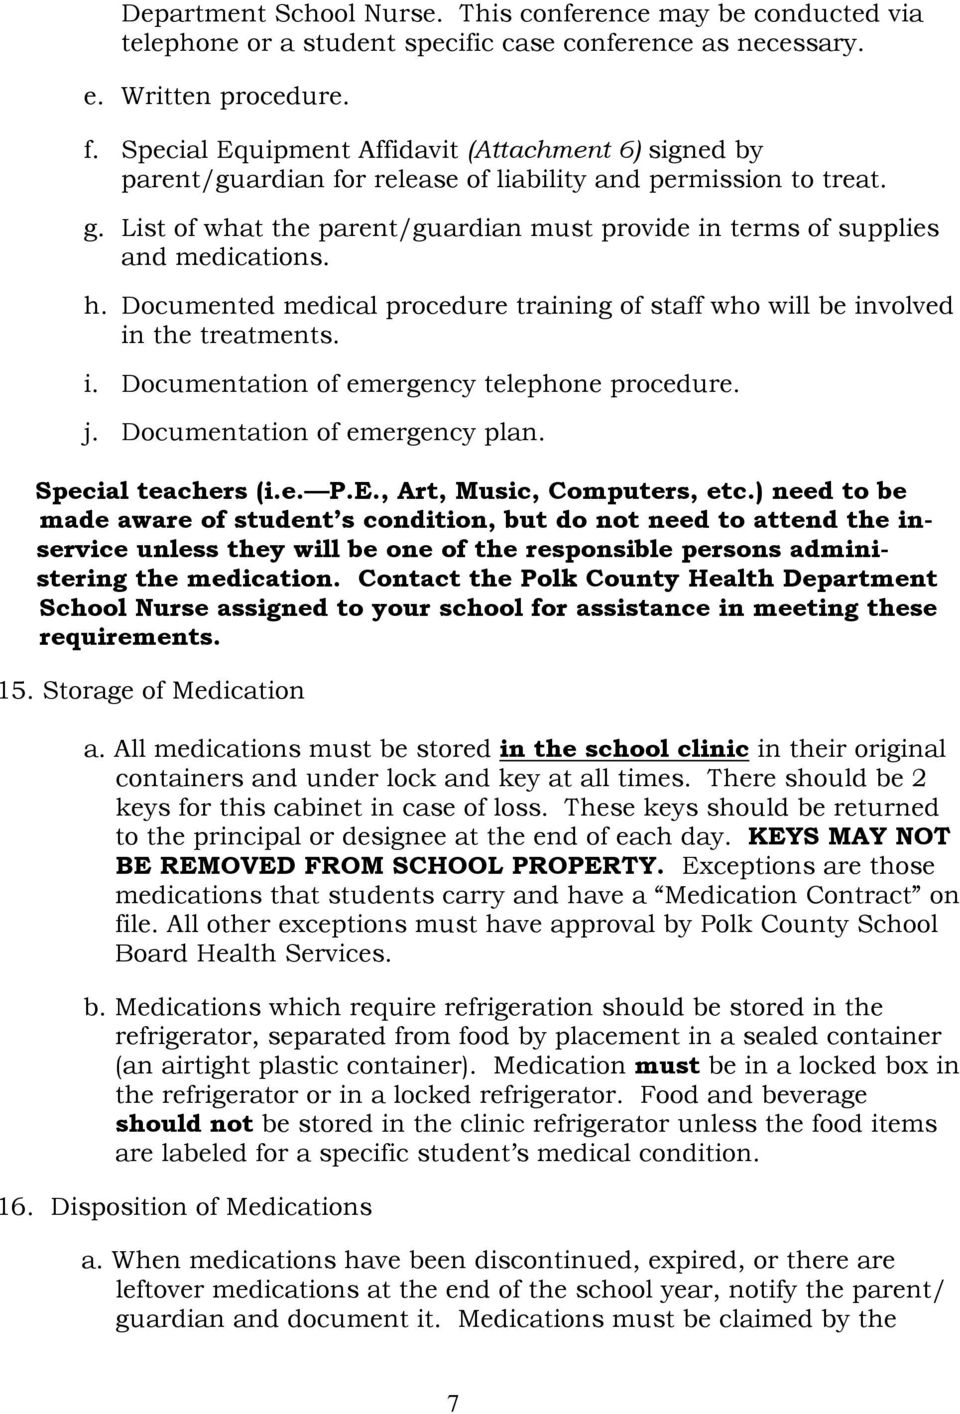 List of what the parent/guardian must provide in terms of supplies and medications. h. Documented medical procedure training of staff who will be involved in the treatments. i. Documentation of emergency telephone procedure.